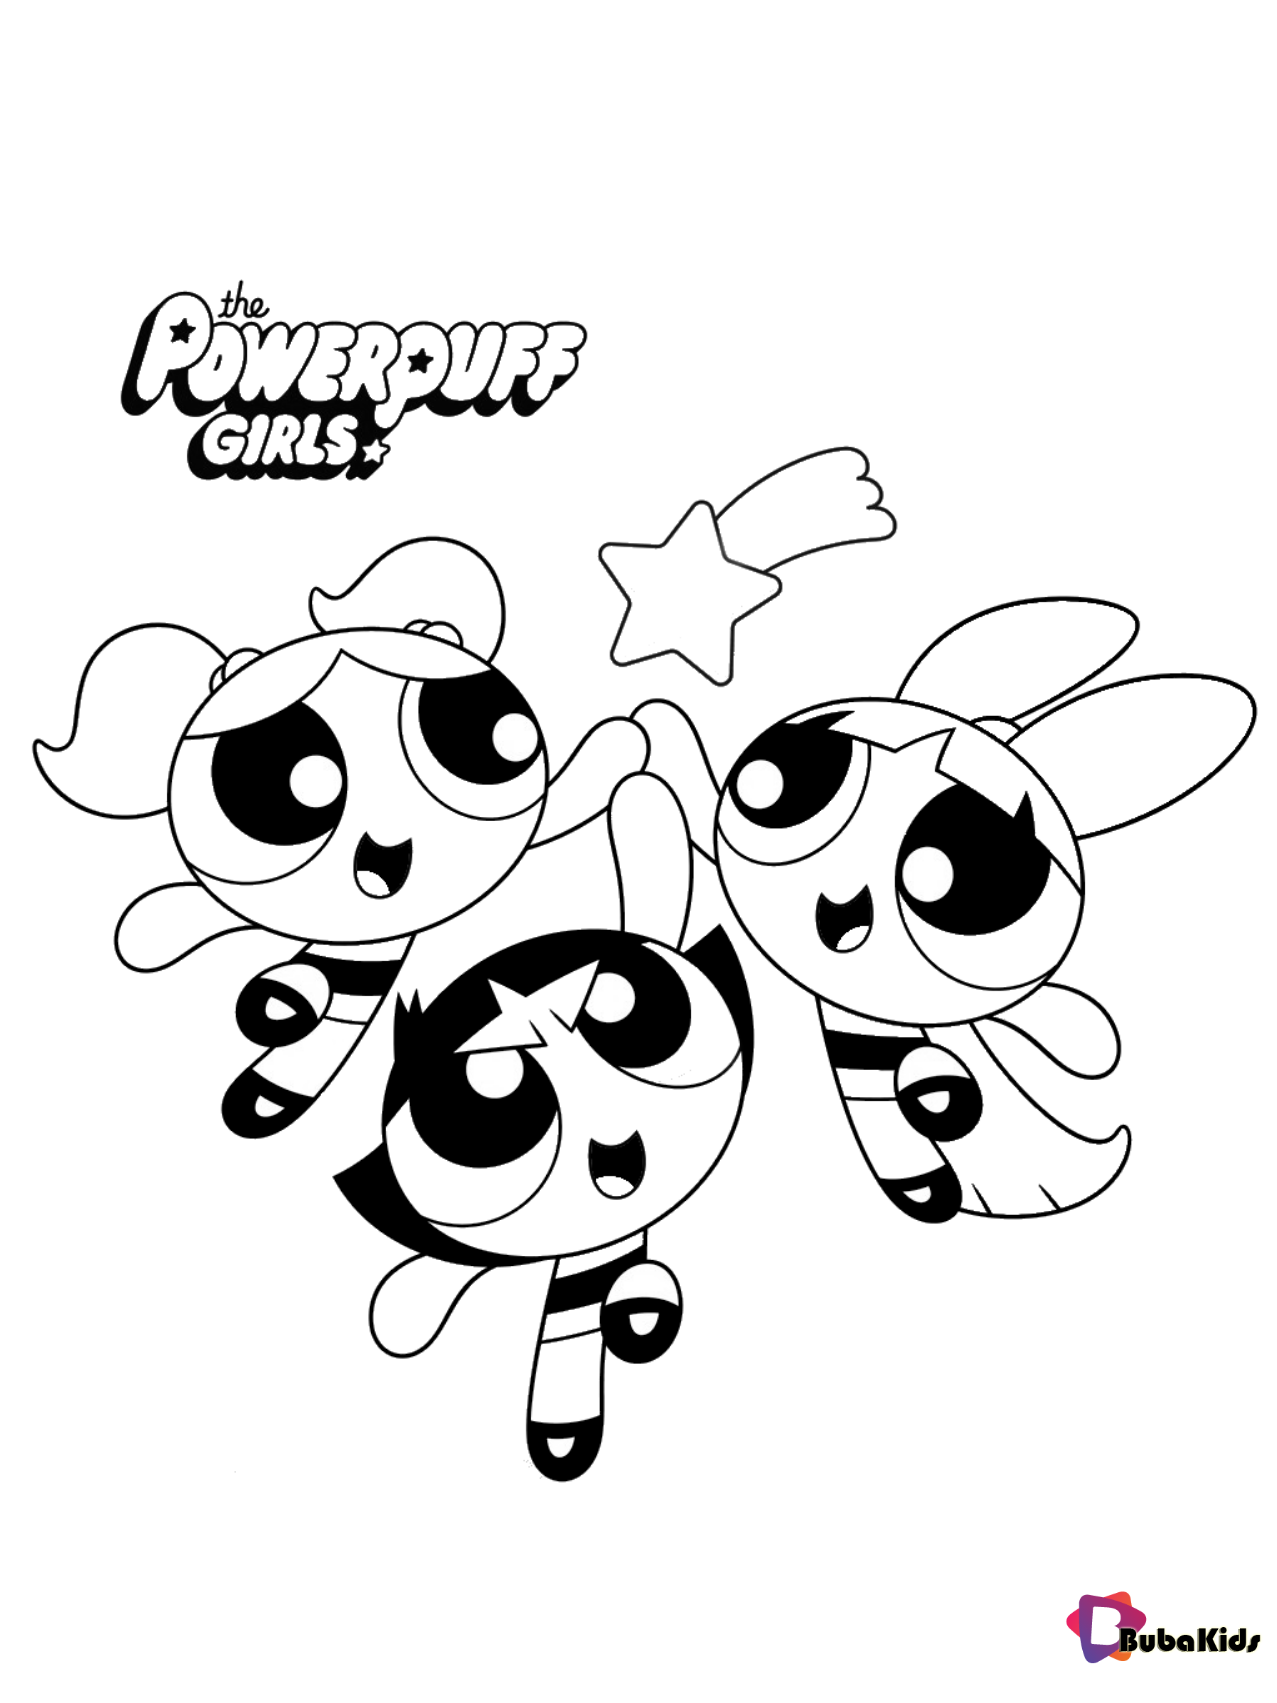 The Powerpuff Girls coloring page Wallpaper